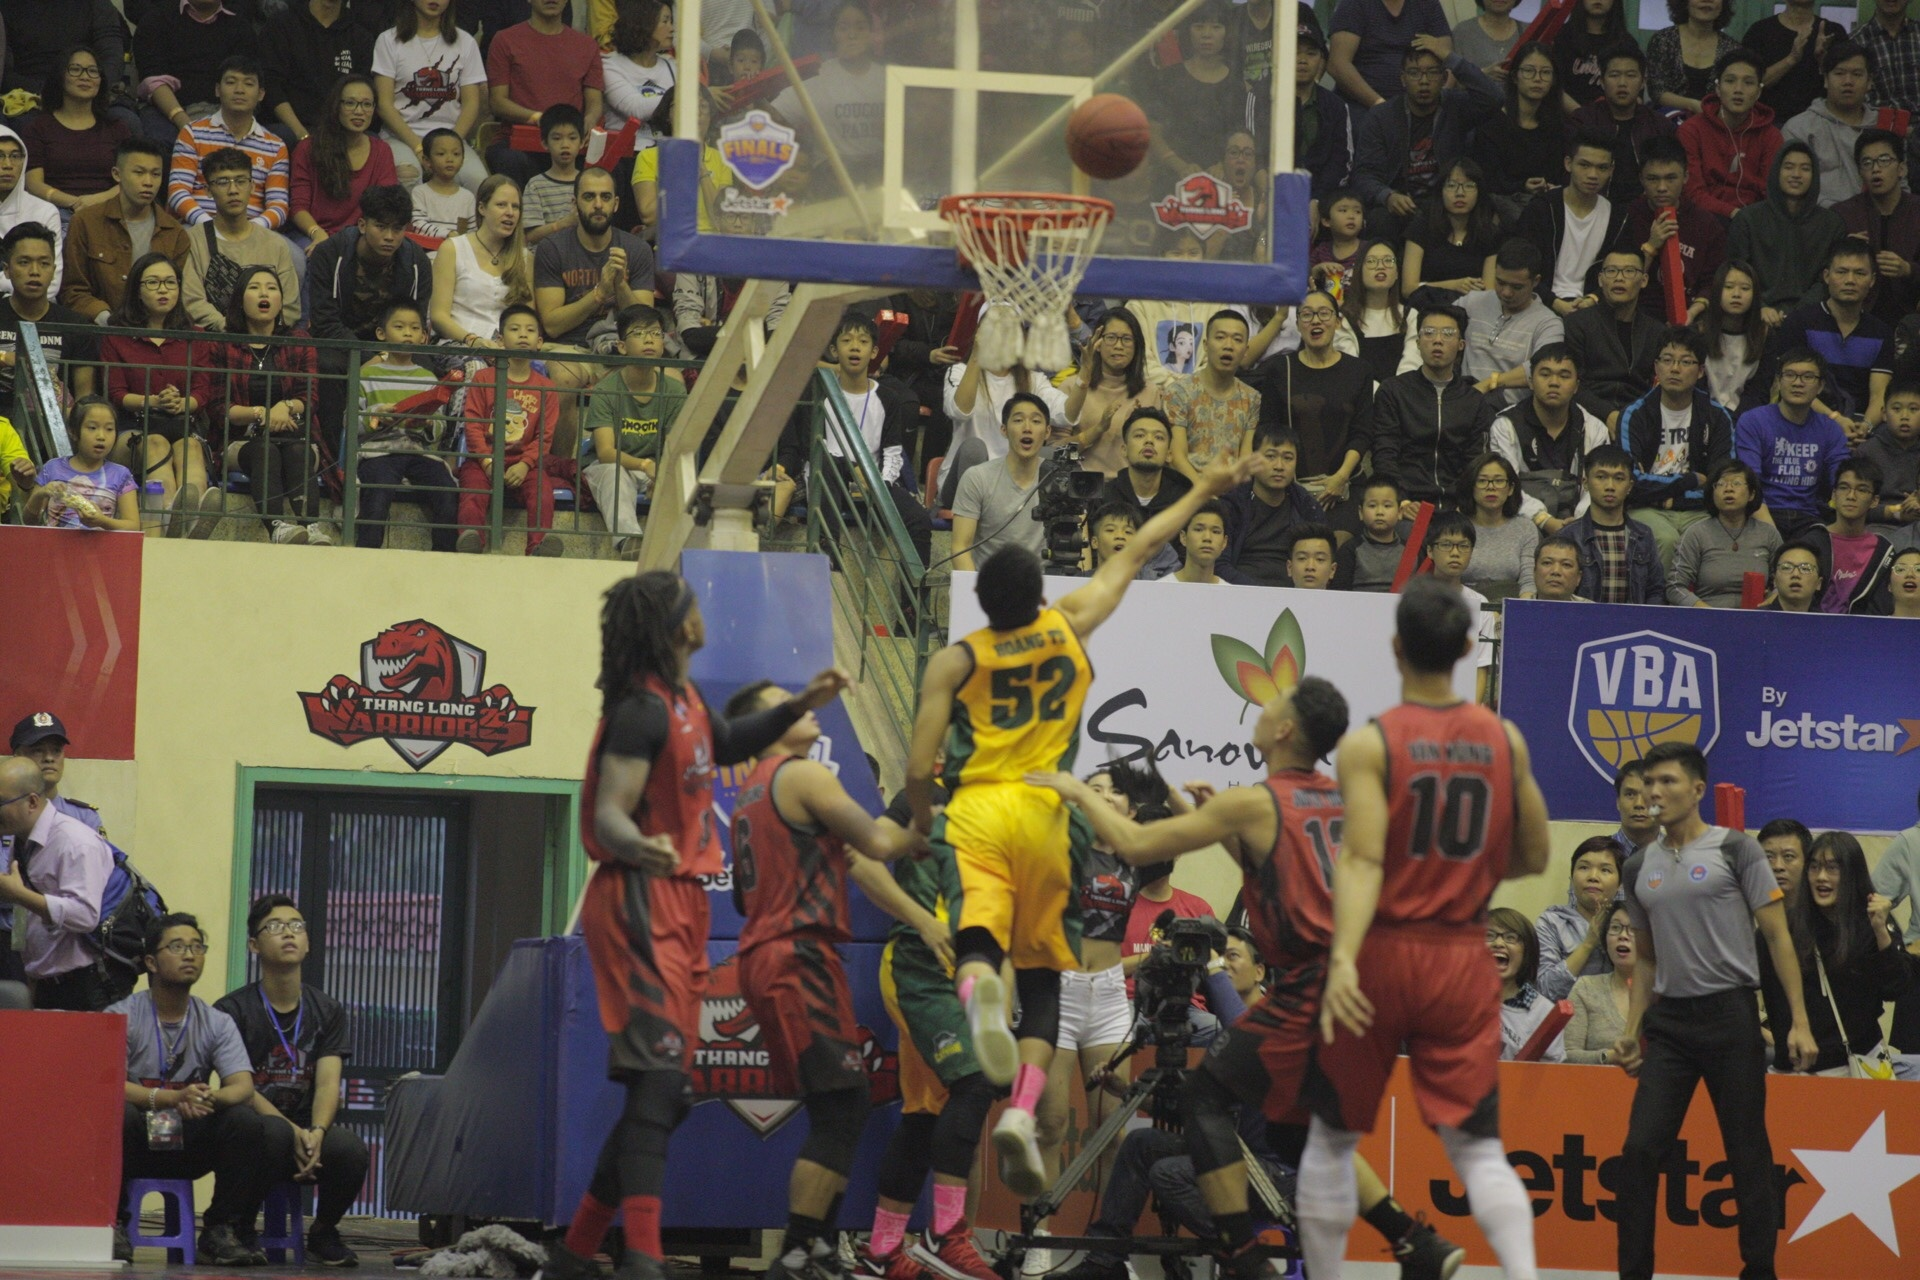 Thanglong Warriors vs Cantho Catfish anh 17